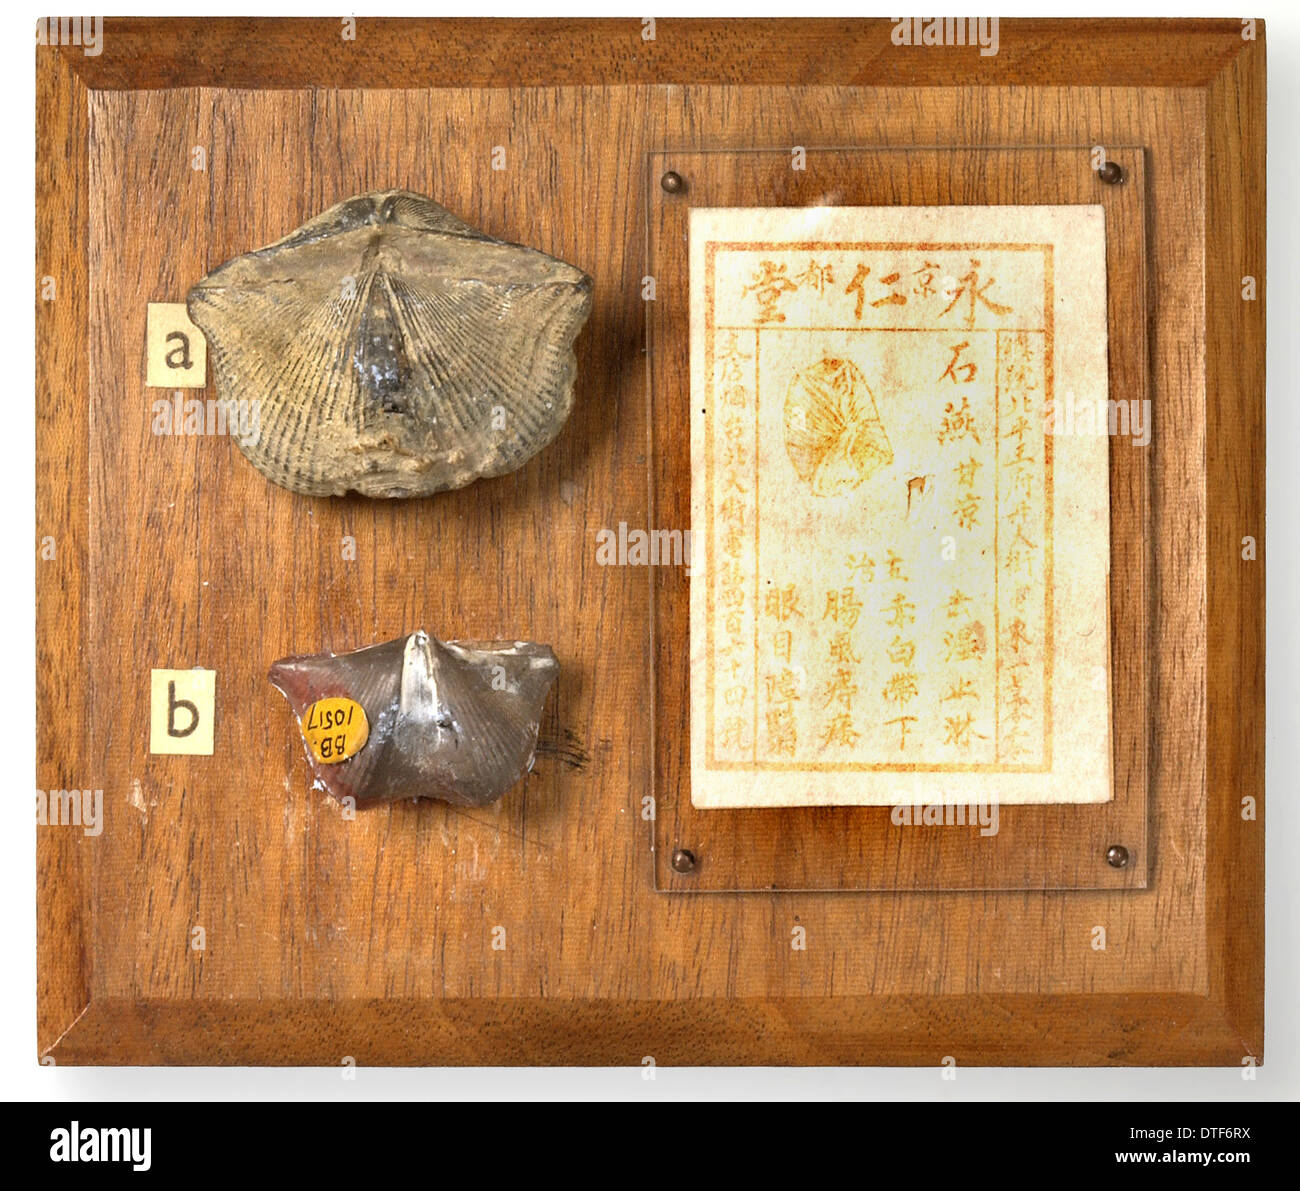 Brachiopods mounted with Chinese medicinal recipe - Stock Image